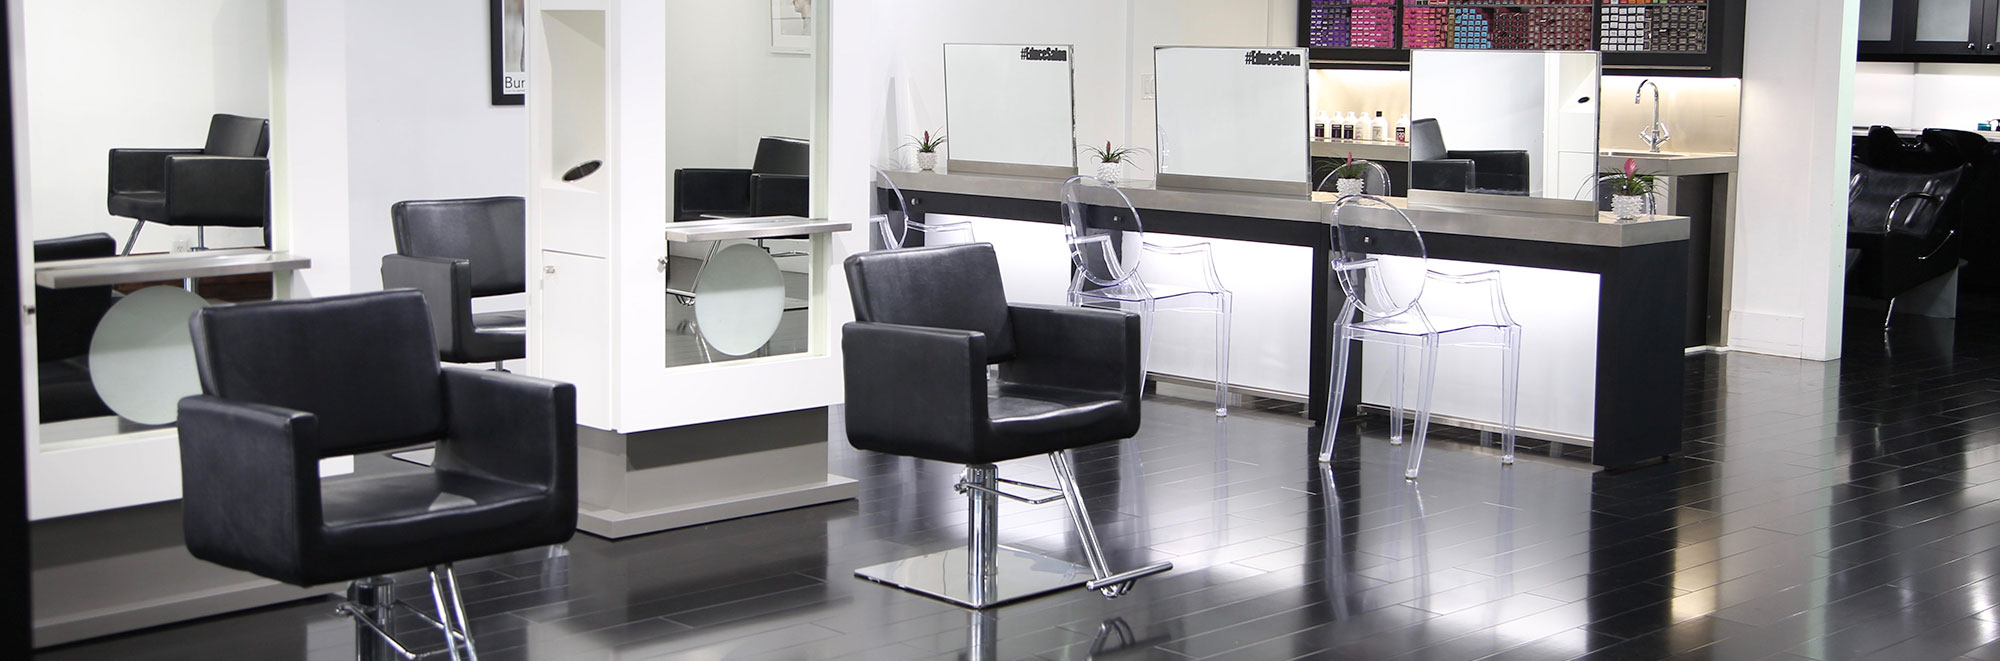 About Educe Salon | Orlandos Best Hair Salon